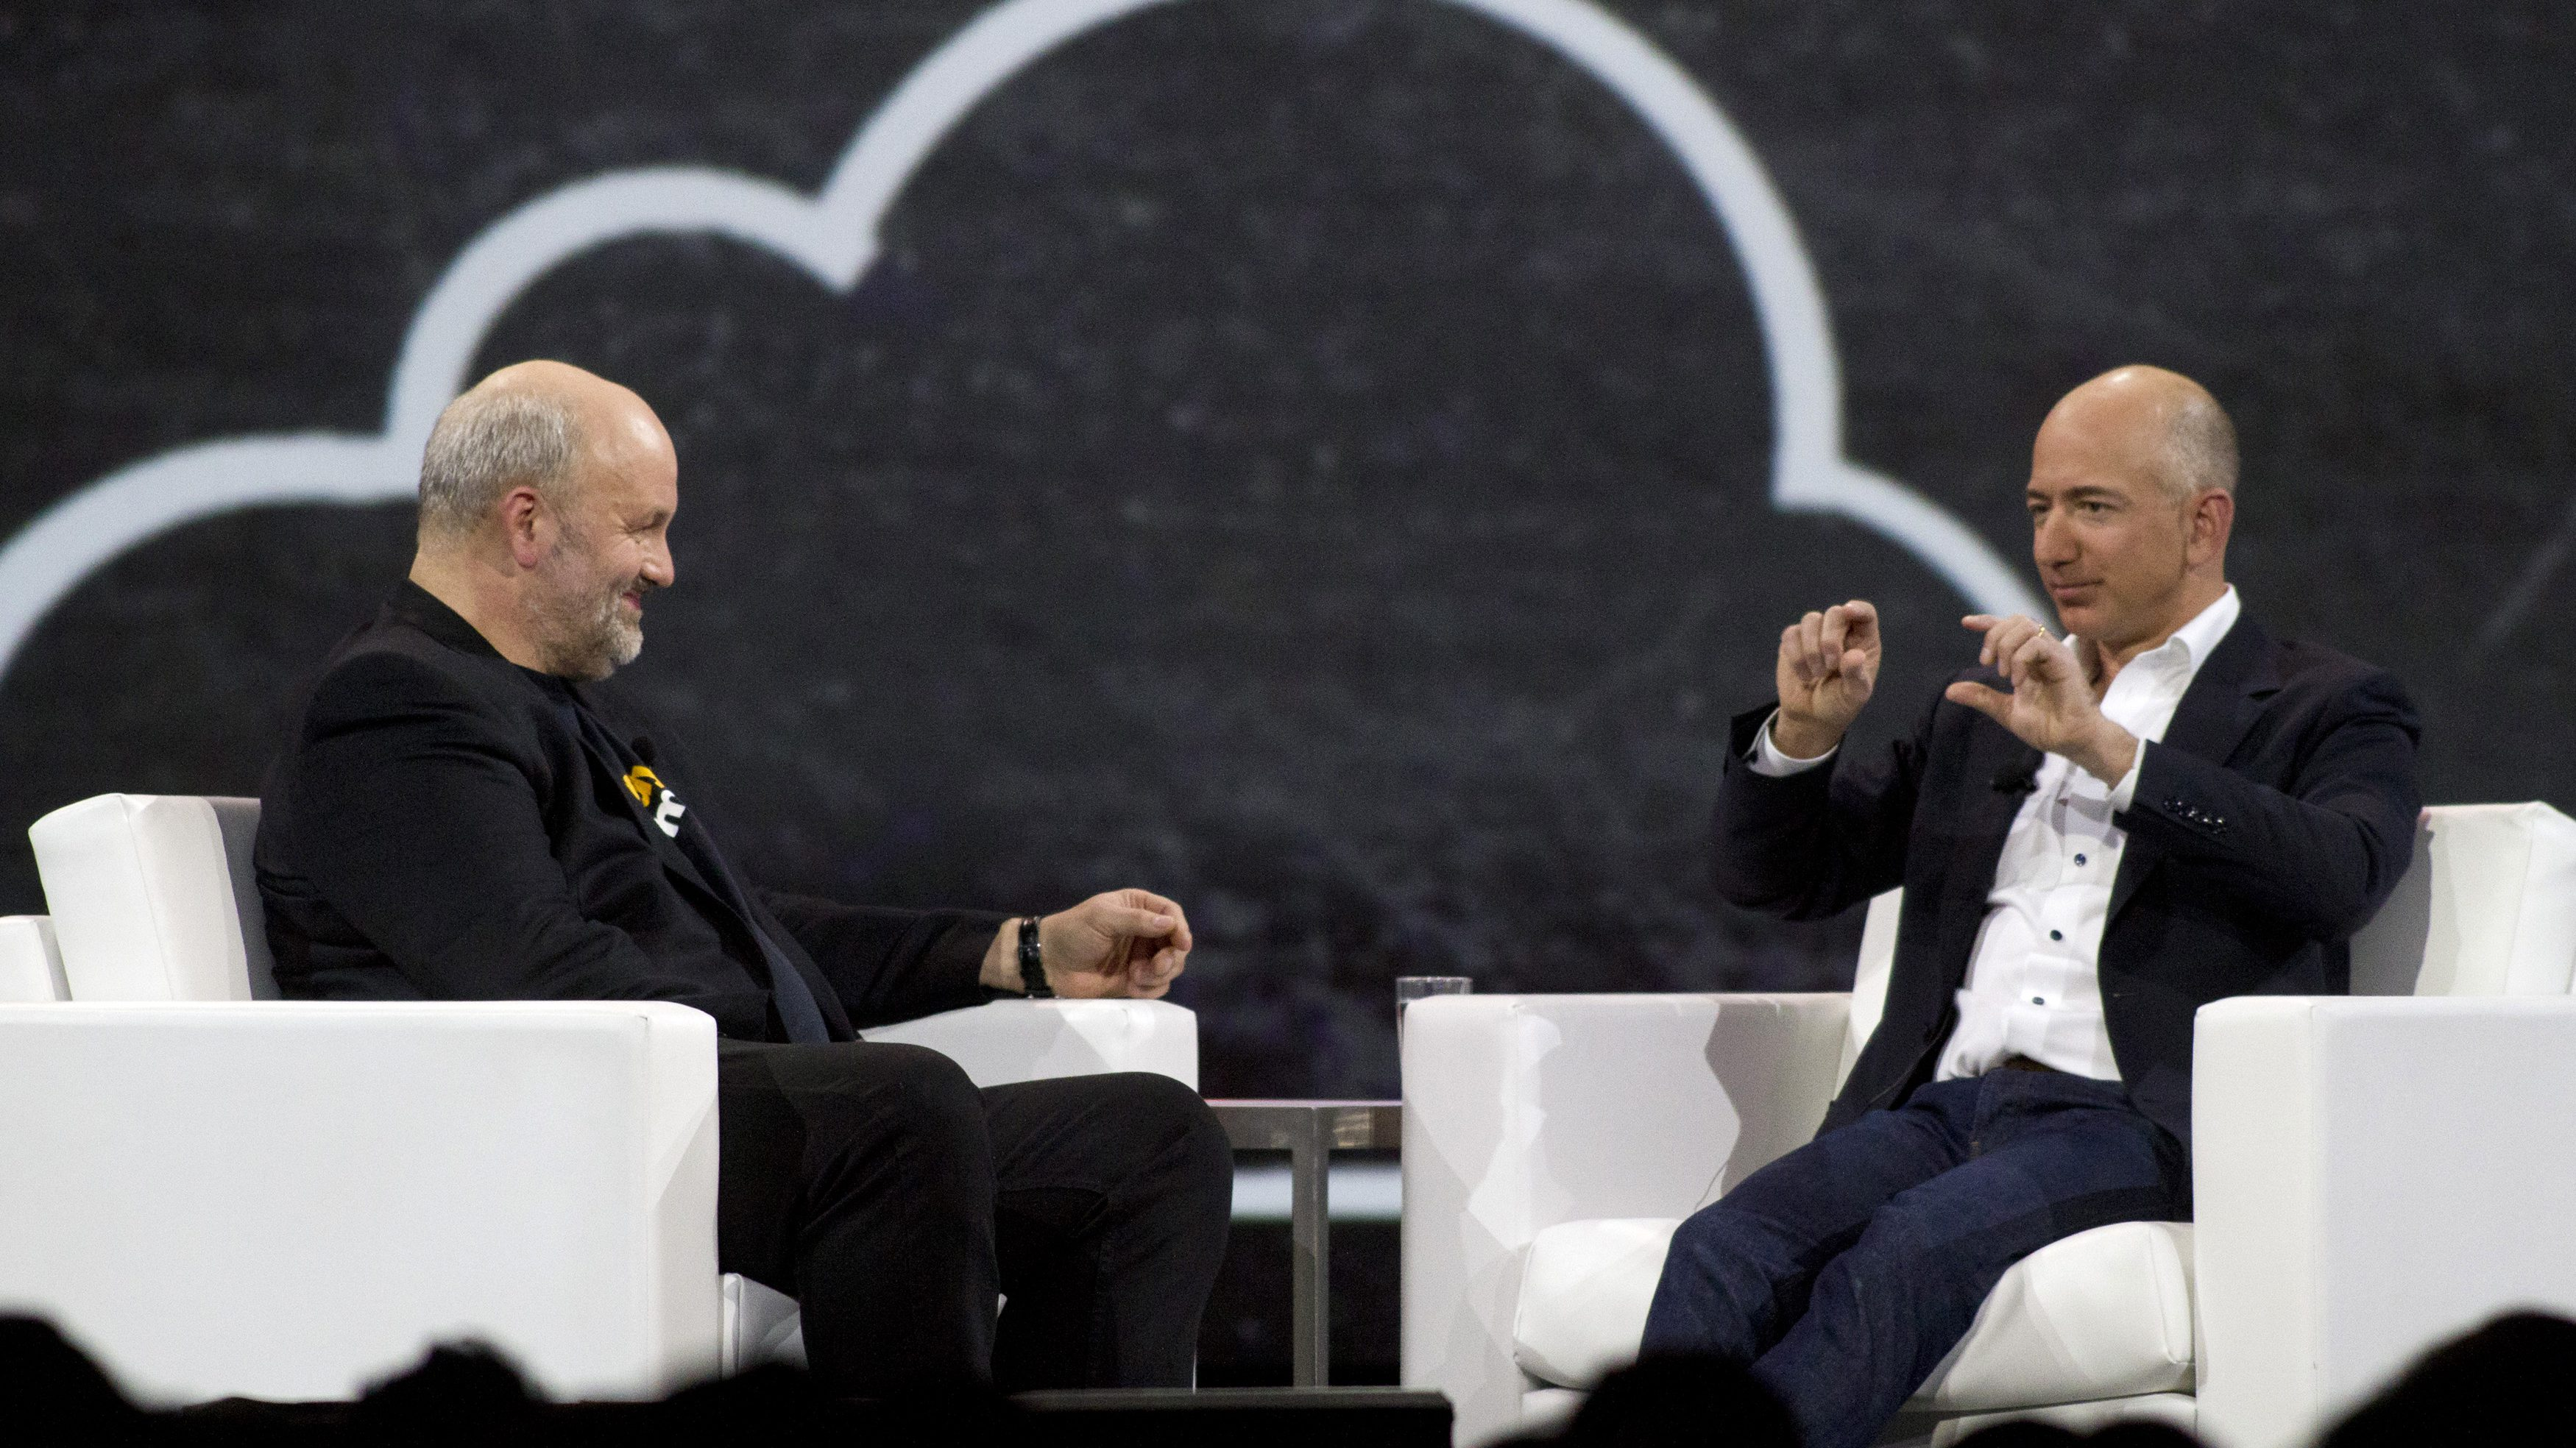 Amazon.com Chief Technology Officer Werner Vogels (L) speaks with Amazon.com Chief Executive Officer Jeff Bezos during a keynote speech at the AWS Re:Invent conference at the Sands Expo in Las Vegas, Nevada November 29, 2012. REUTERS/Richard Brian (UNITED STATES - Tags: SCIENCE TECHNOLOGY BUSINESS) - GM1E8BU0NKB01